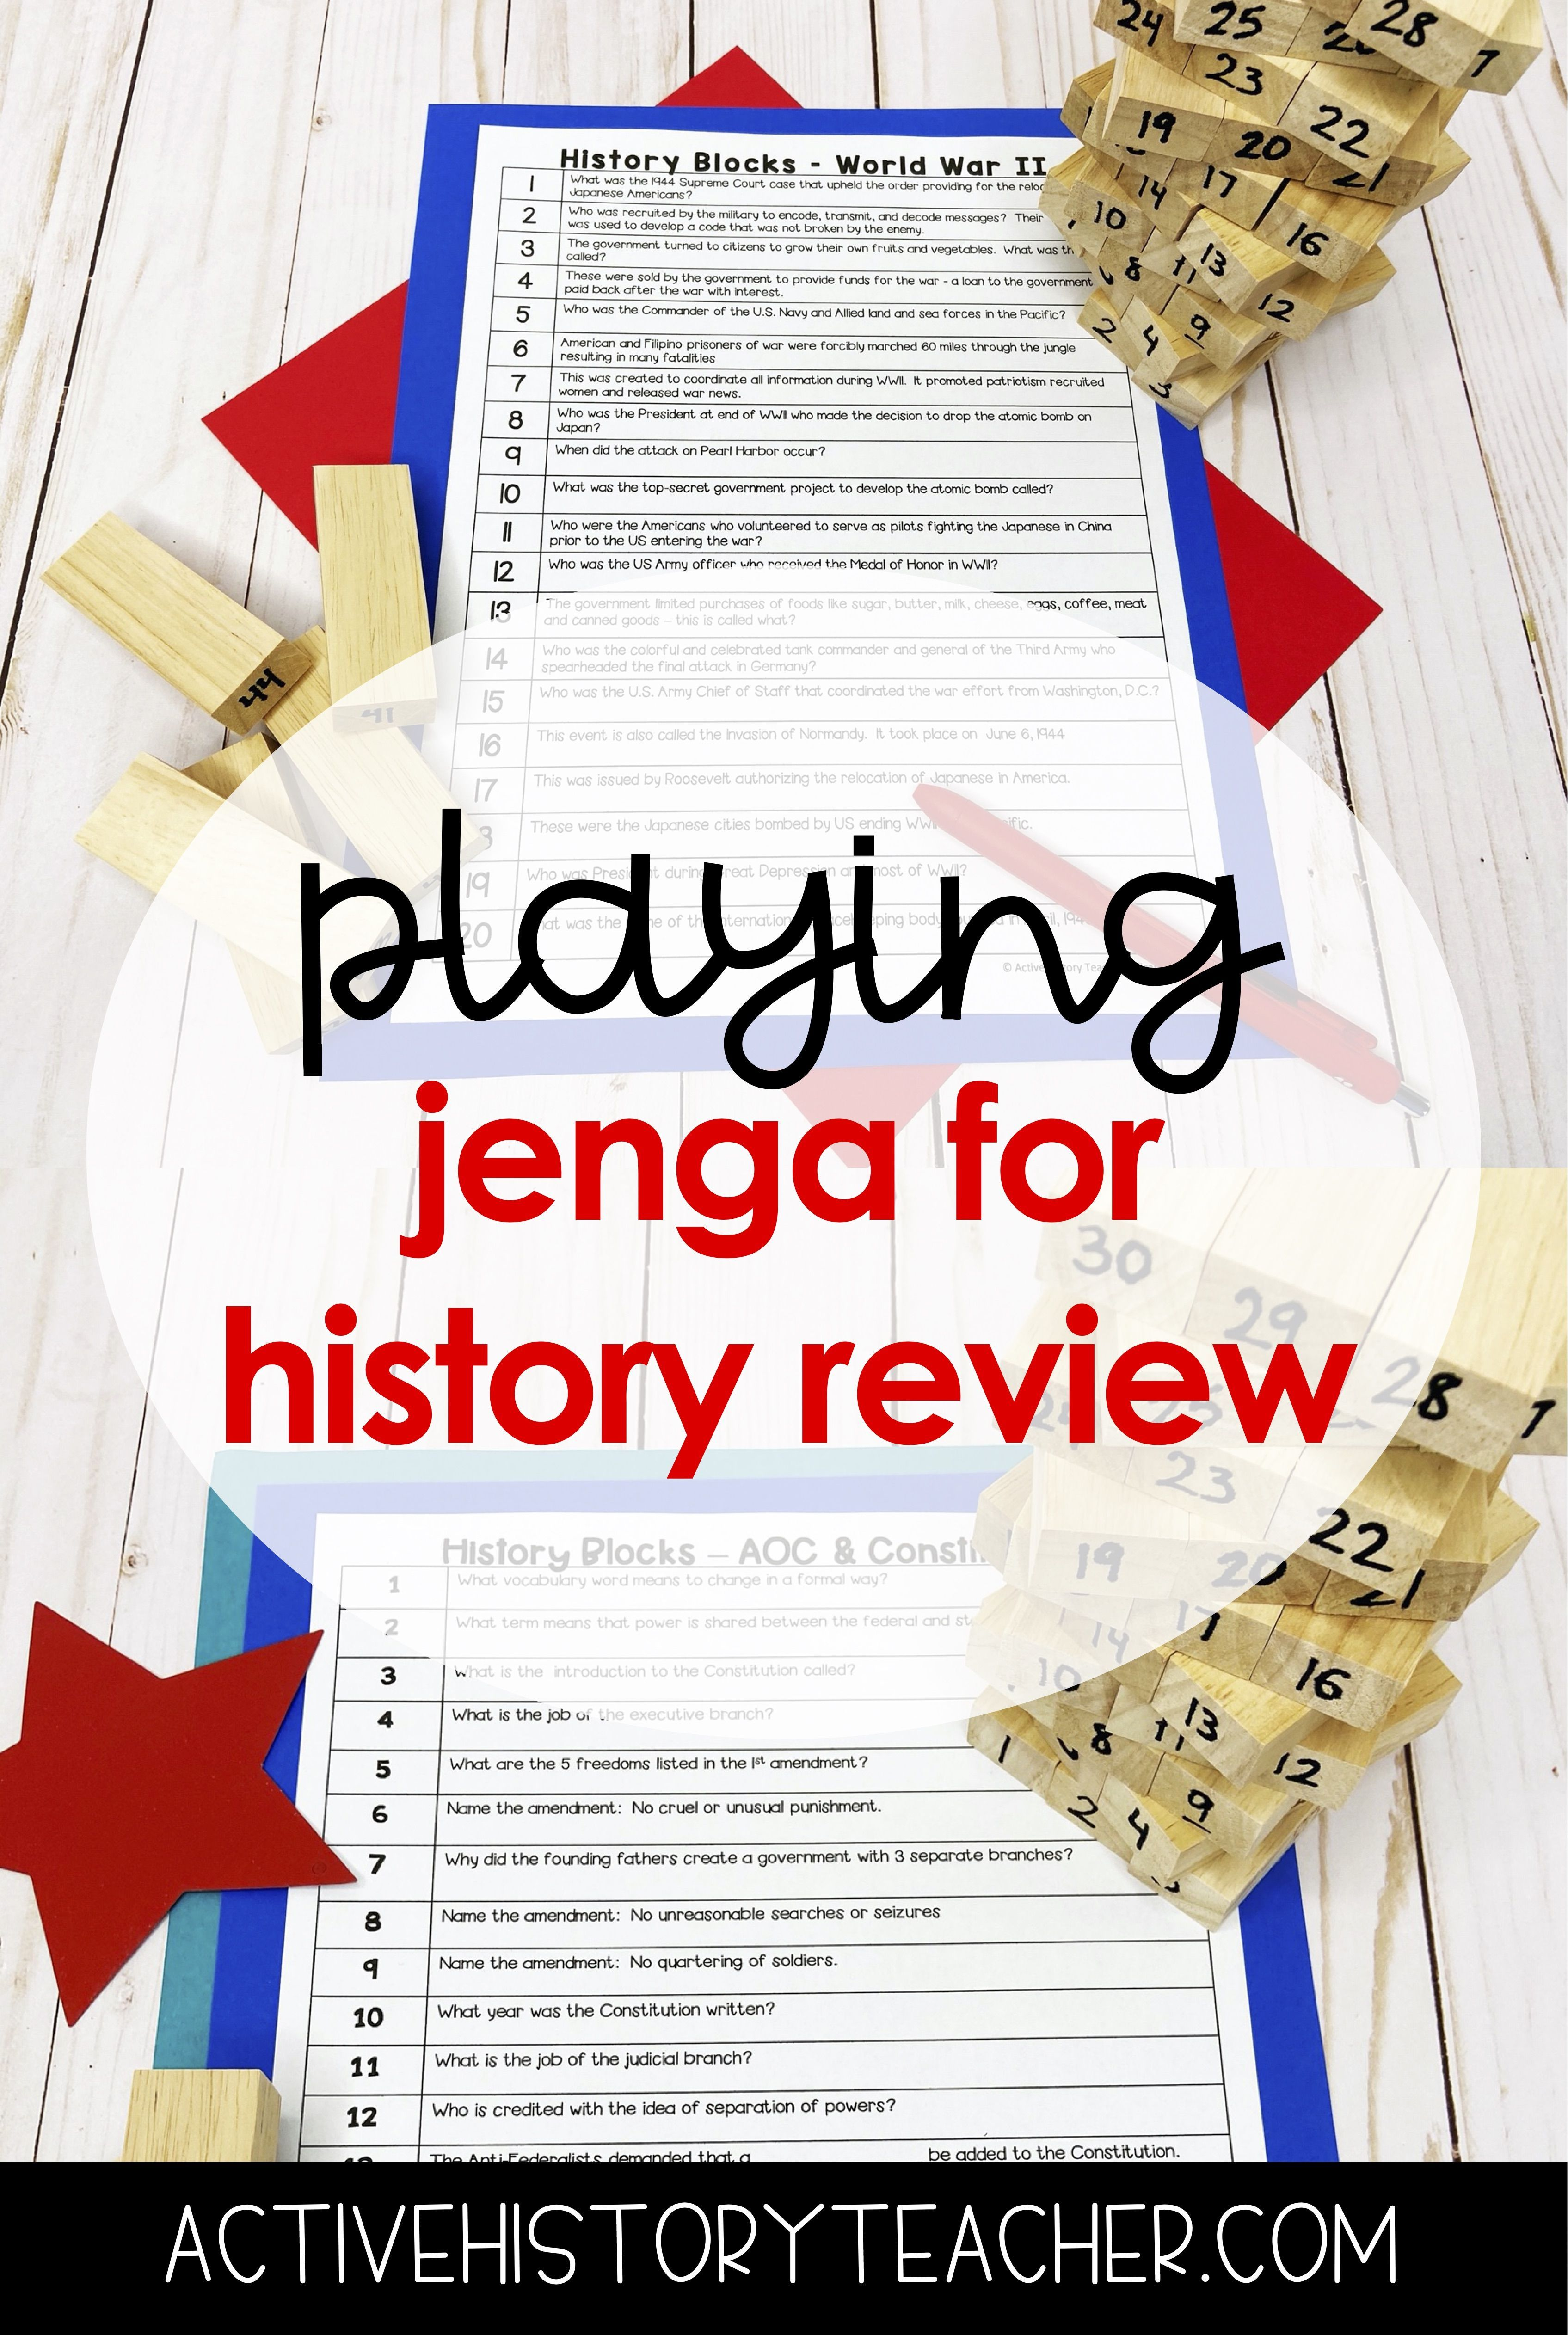 Play Jenga To Review In History Class In